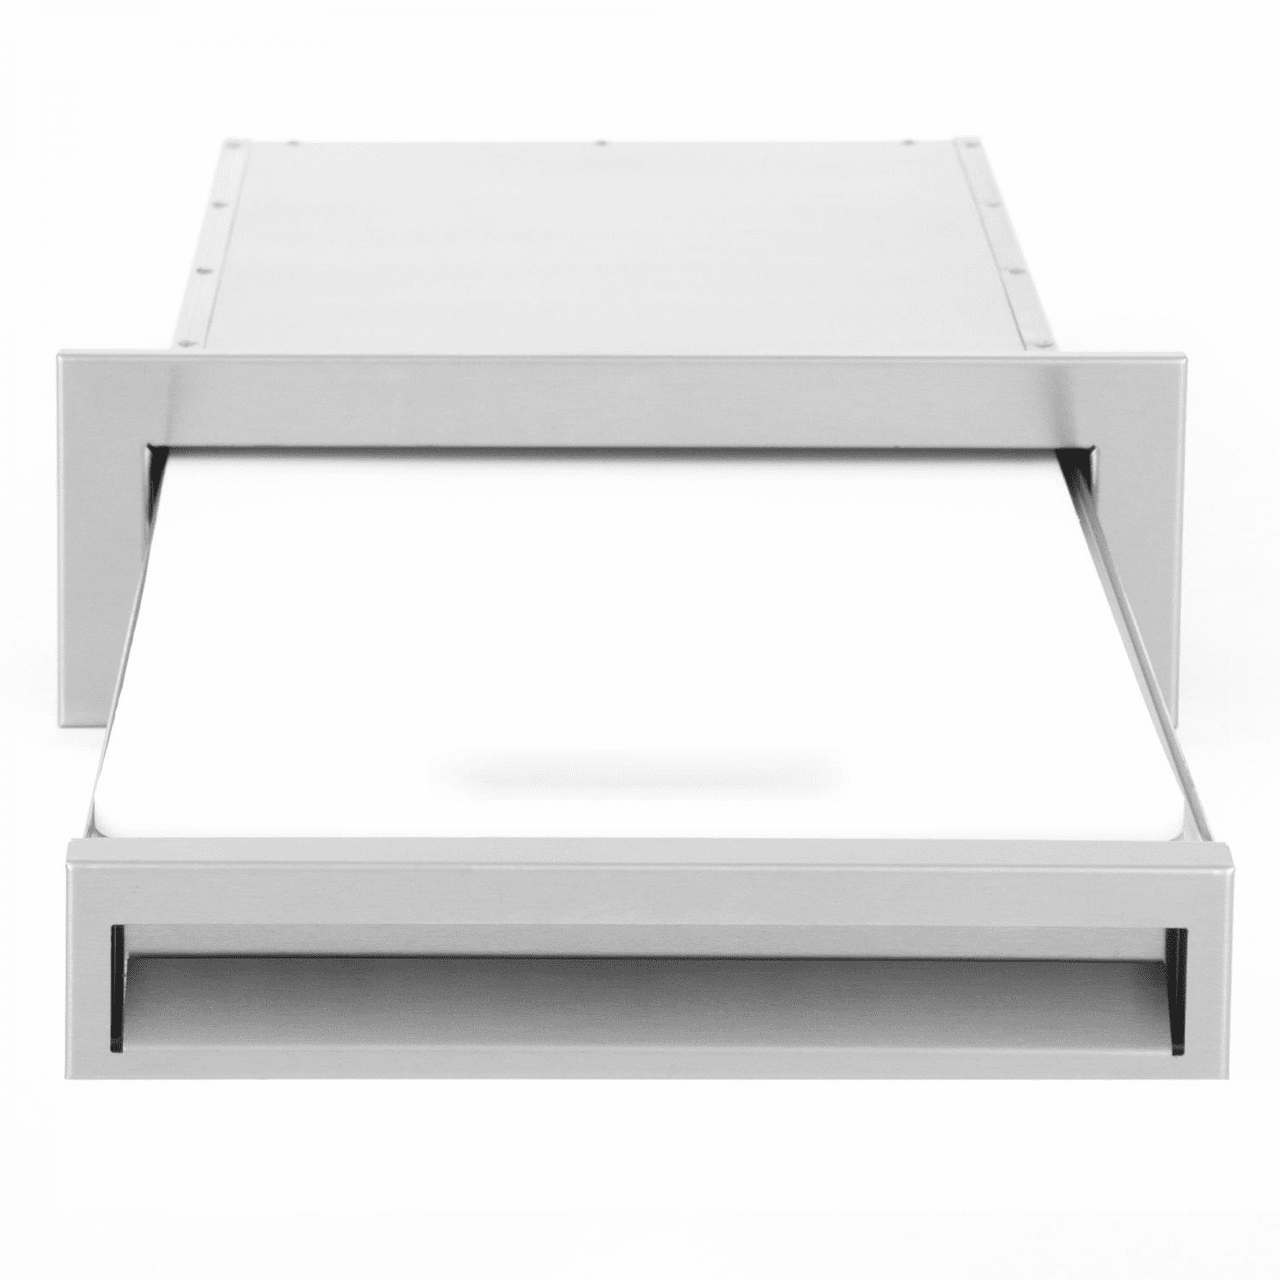 PCM 301 Series Cutting Board Drawer with Storage PCM-350-CB